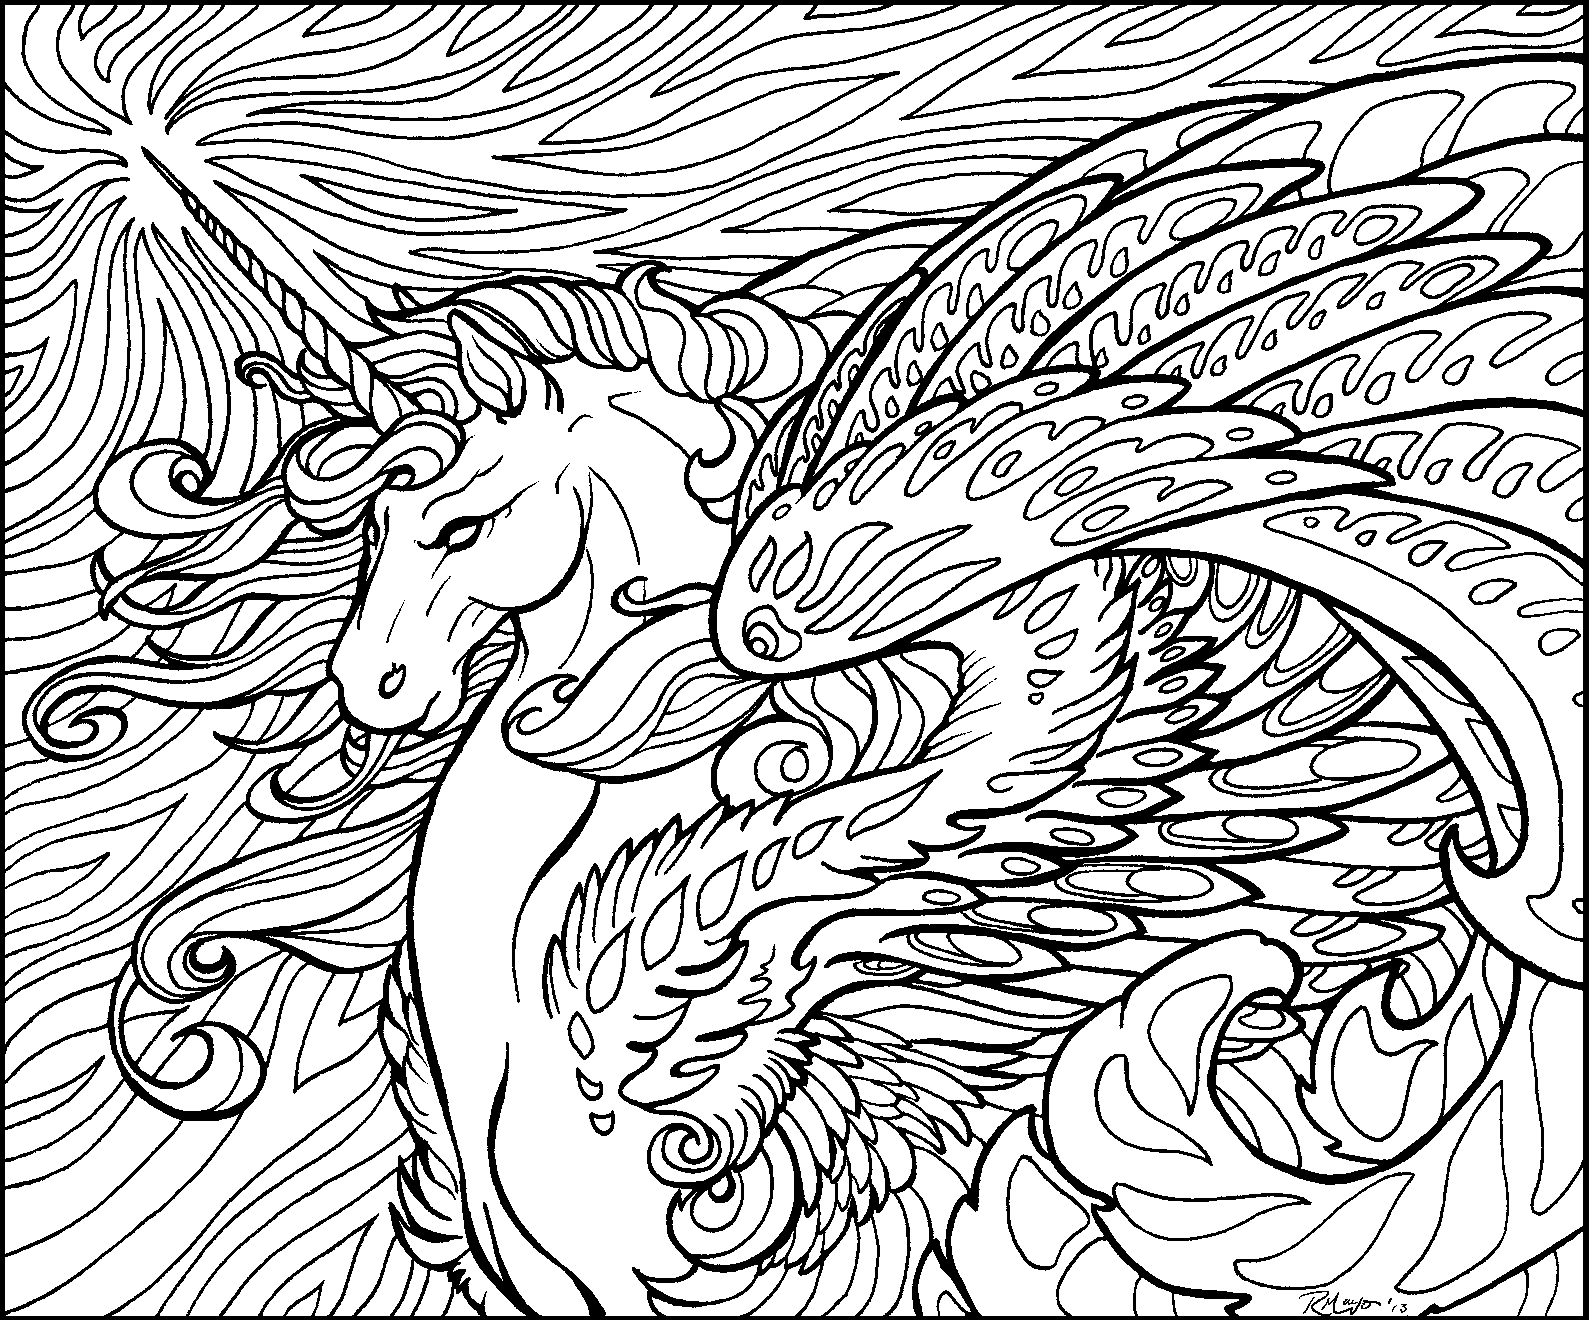 sea dragon coloring pages sea dragon coloring pages at getdrawings free download coloring sea dragon pages